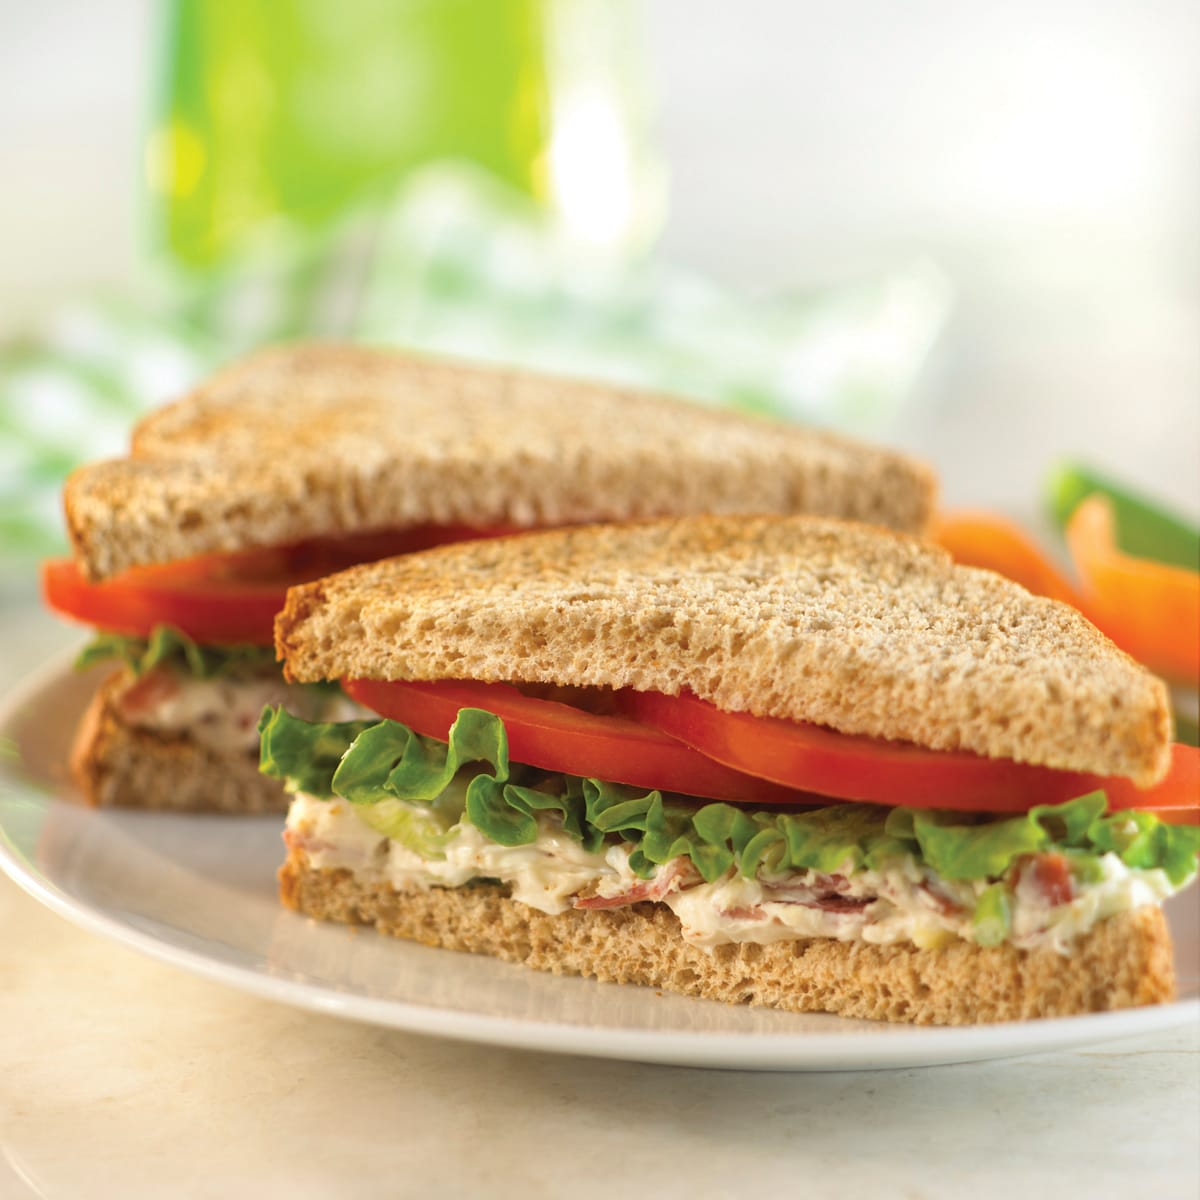 Photo of BCLT sandwiches by WW